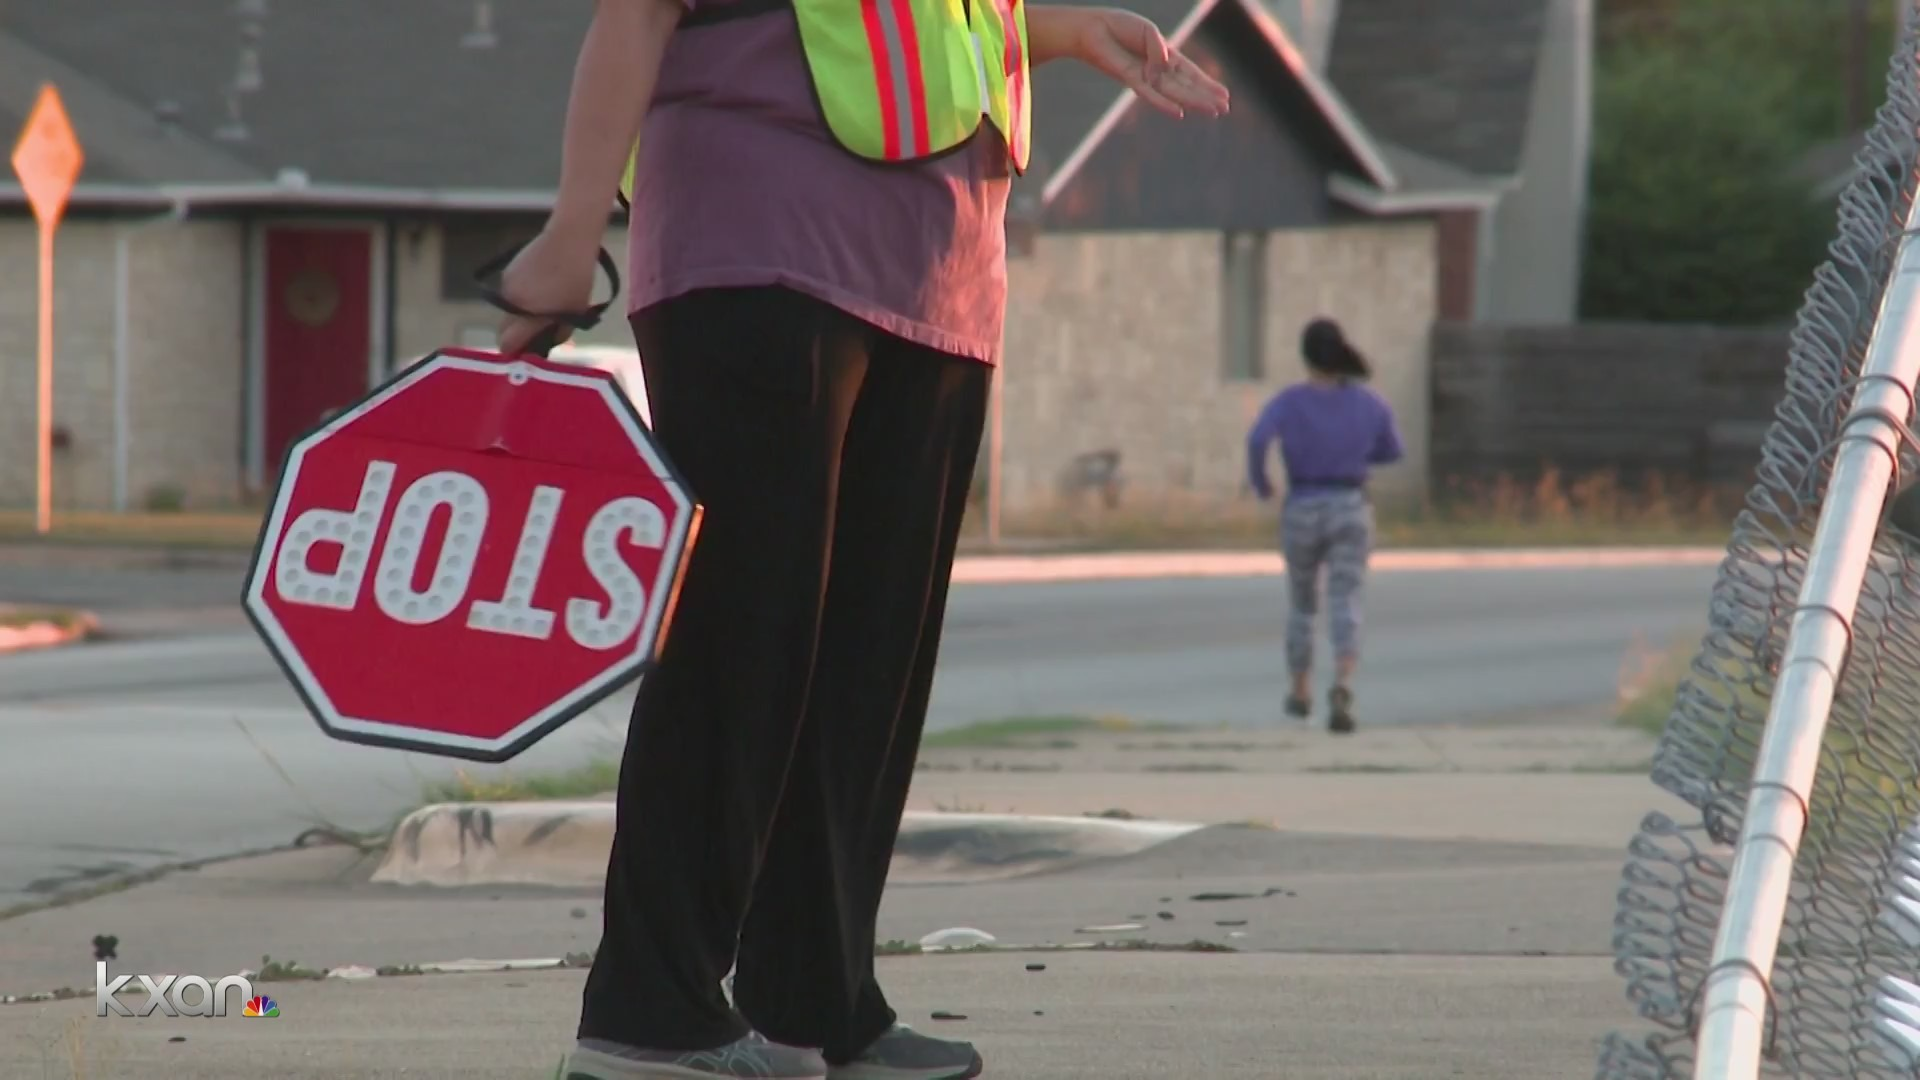 The Round Rock Independent School District needs more crossing guards to help get kids across streets safely. (KXAN photo)